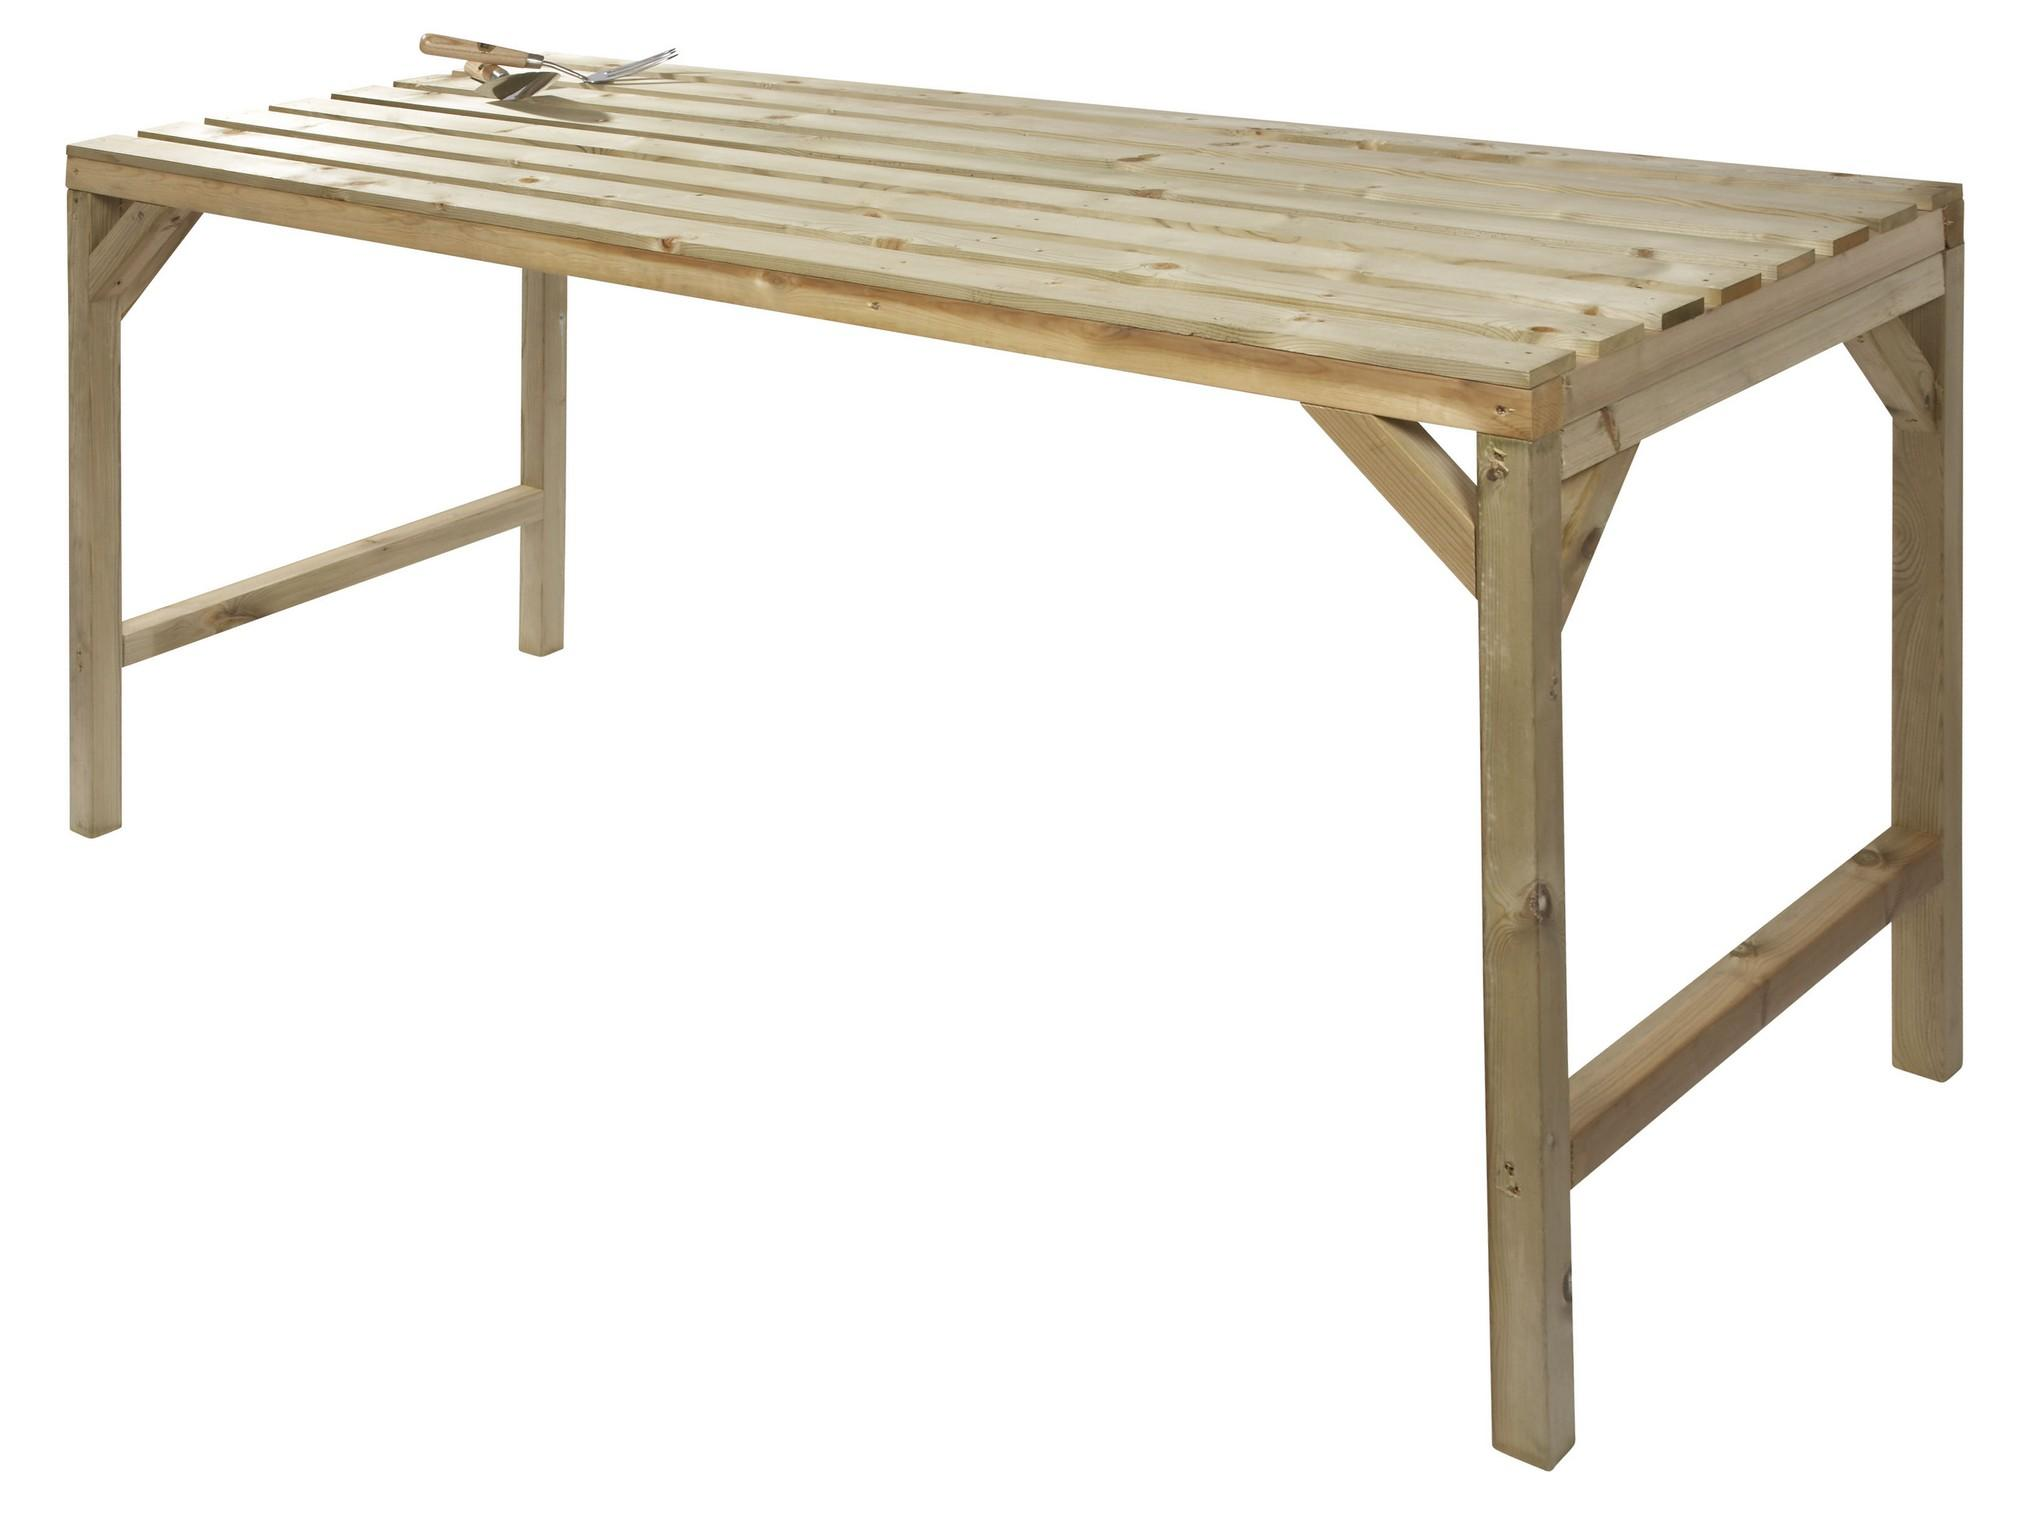 Hercules Wooden Greenhouse Staging Bench 6ft Long X 30 Wide 1785mm X 763mm Ebay